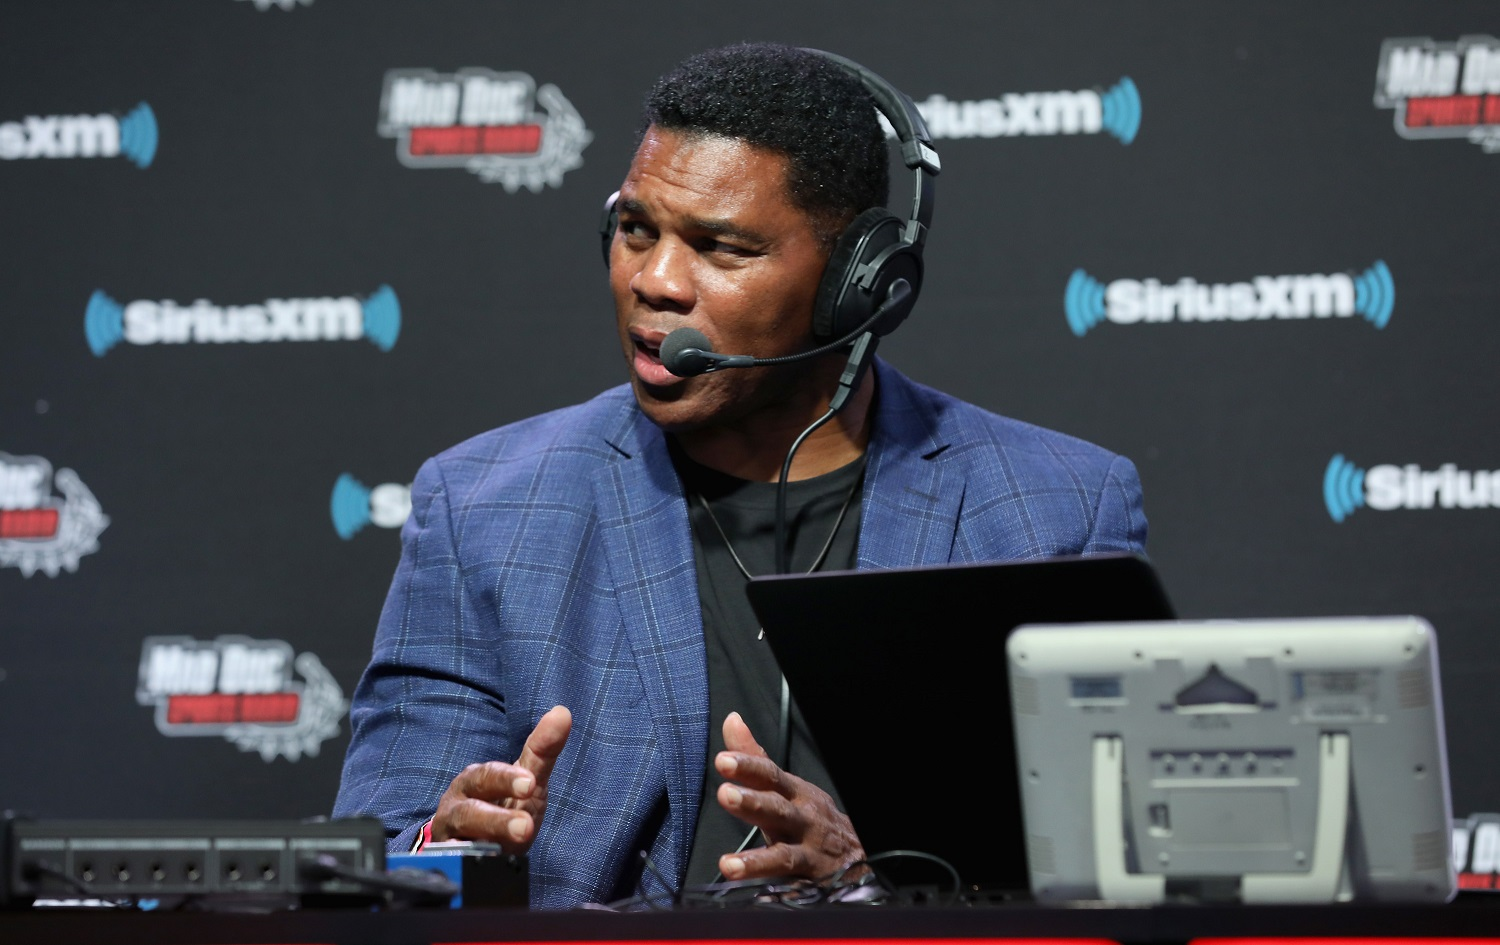 Retired college and pro football star Herschel Walker grew up in Georgia. He is considering a run for the U.S. Senate from the state. | Cindy Ord/Getty Images for SiriusXM